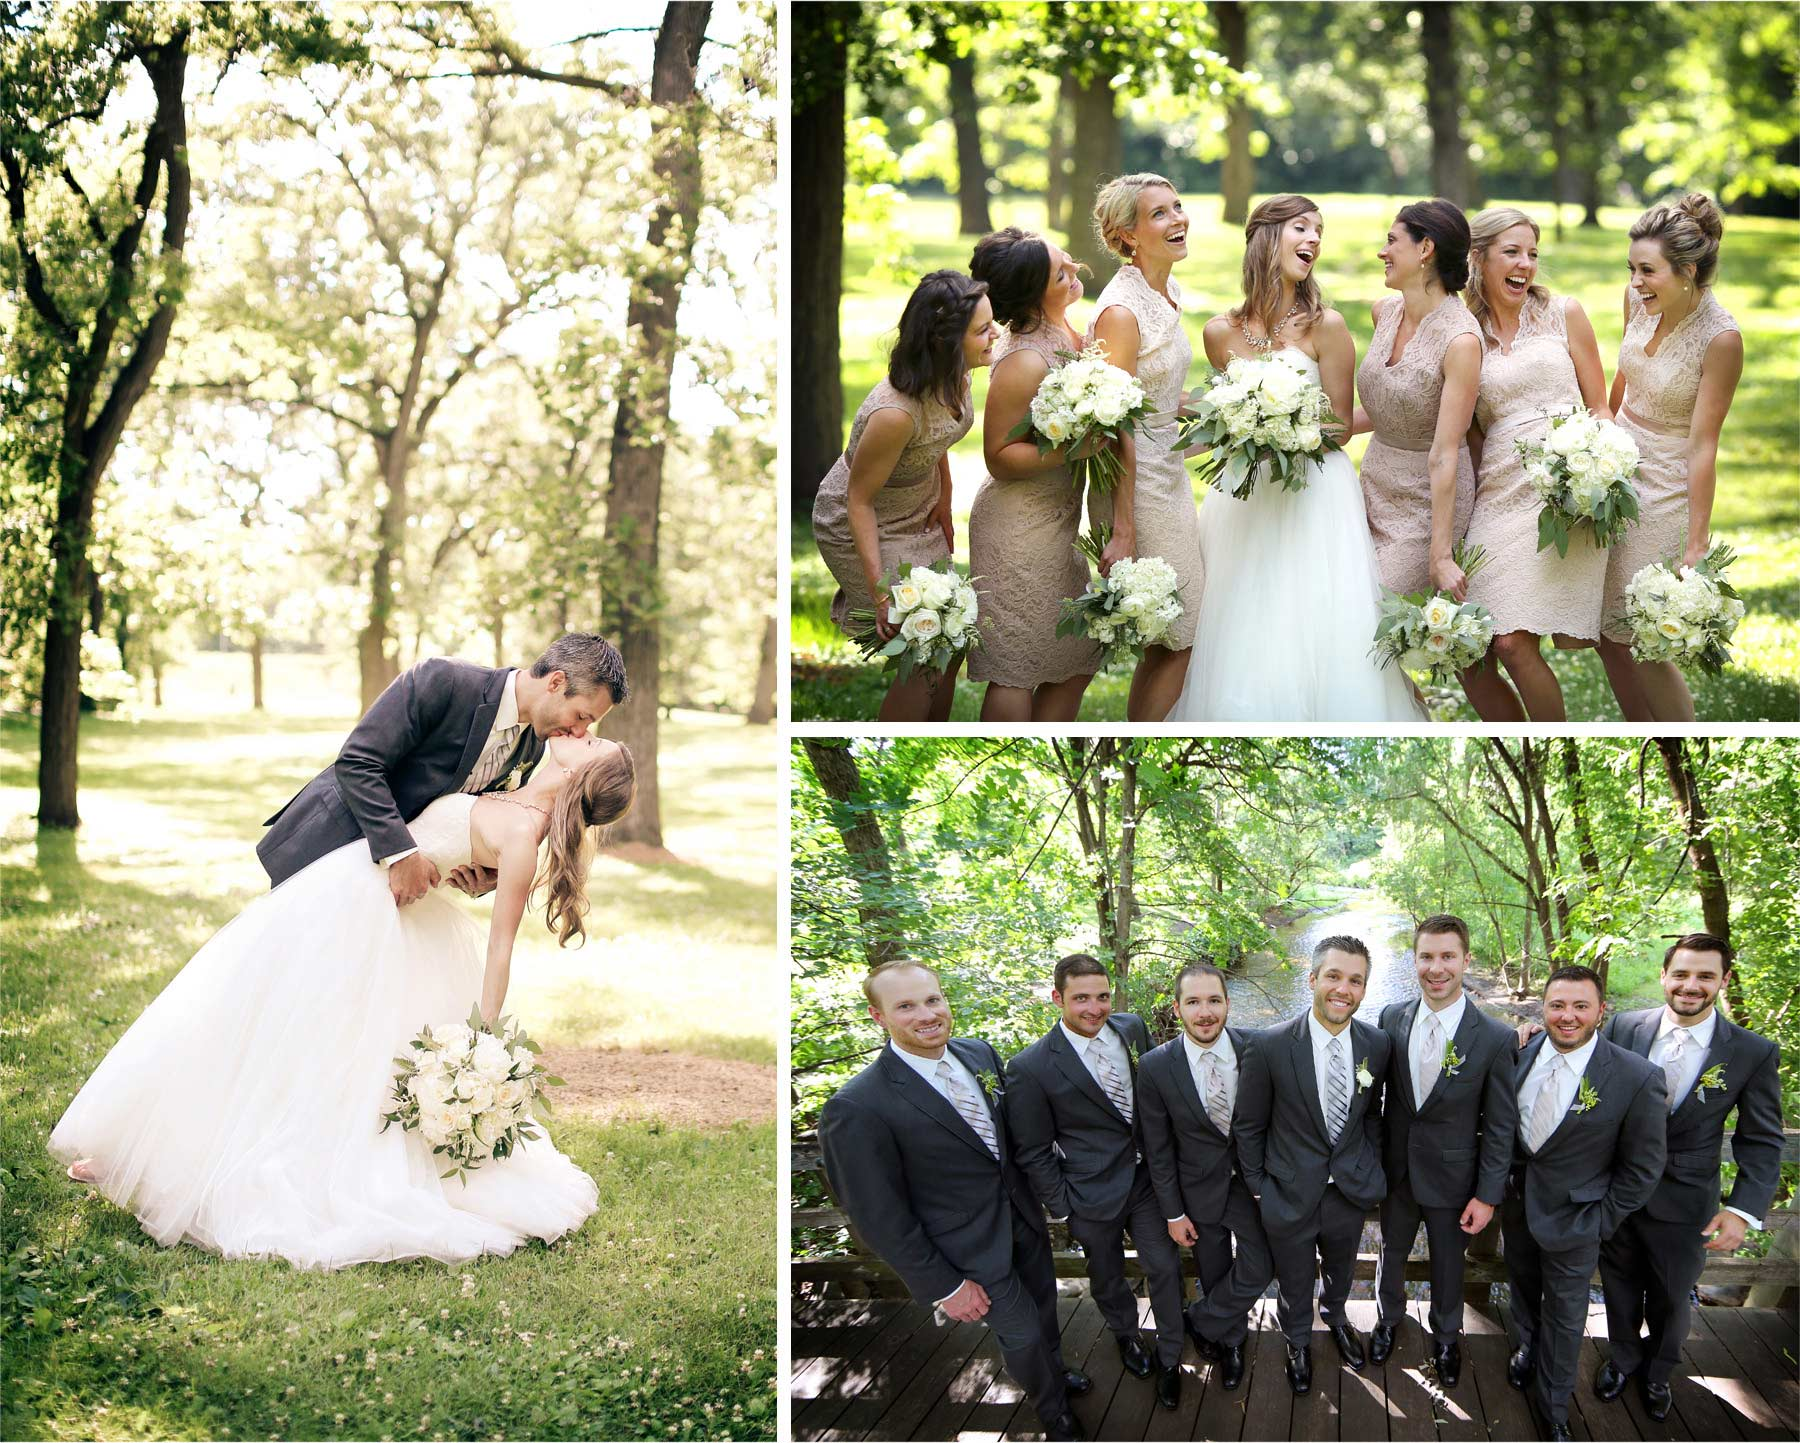 12-Minneapolis-Minnesota-Wedding-Photographer-by-Andrew-Vick-Photography-Summer-Woods-Bride-Groom-Dip-Kiss-Bridesmaids-Laughter-Groomsmen-Bridal-Party-Vintage-Katie-and-Travis.jpg